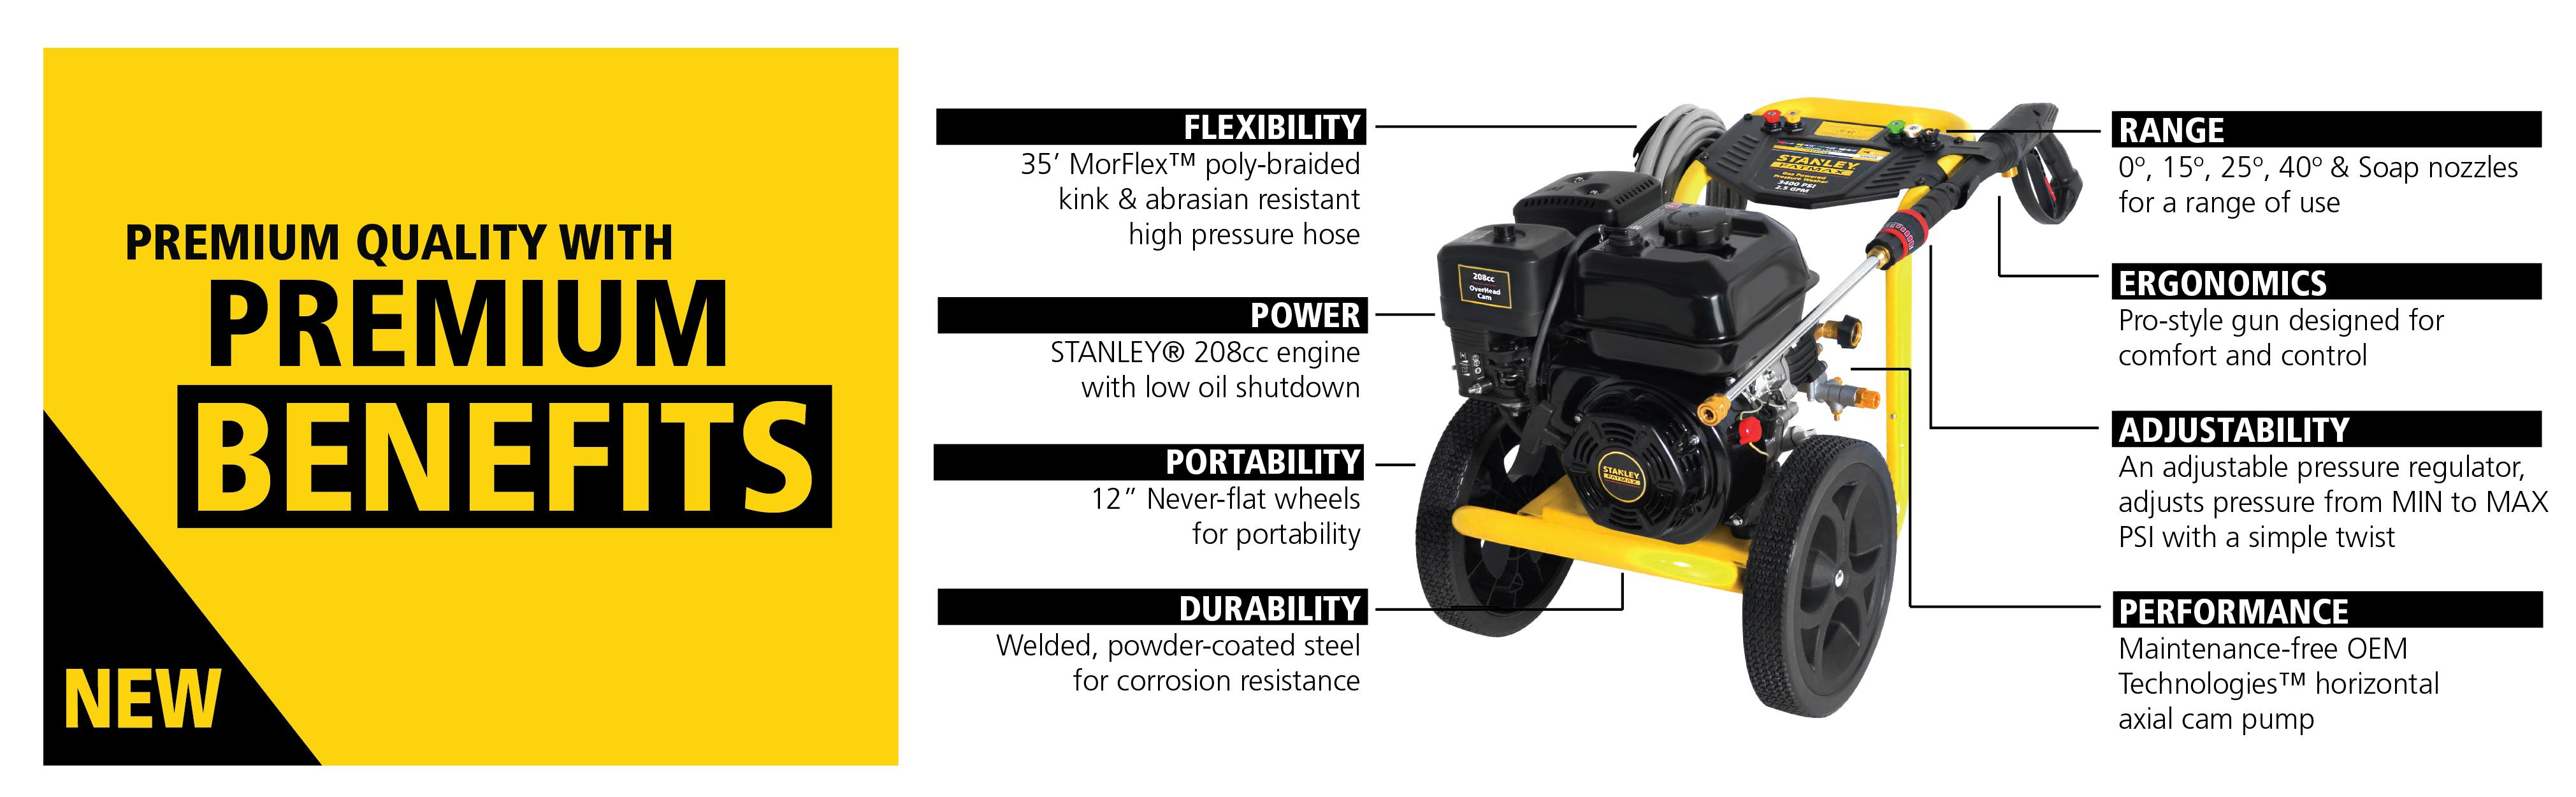 Stanley Fatmax Sxpw3425 Gas Pressure Washer 3400 Psi At 2